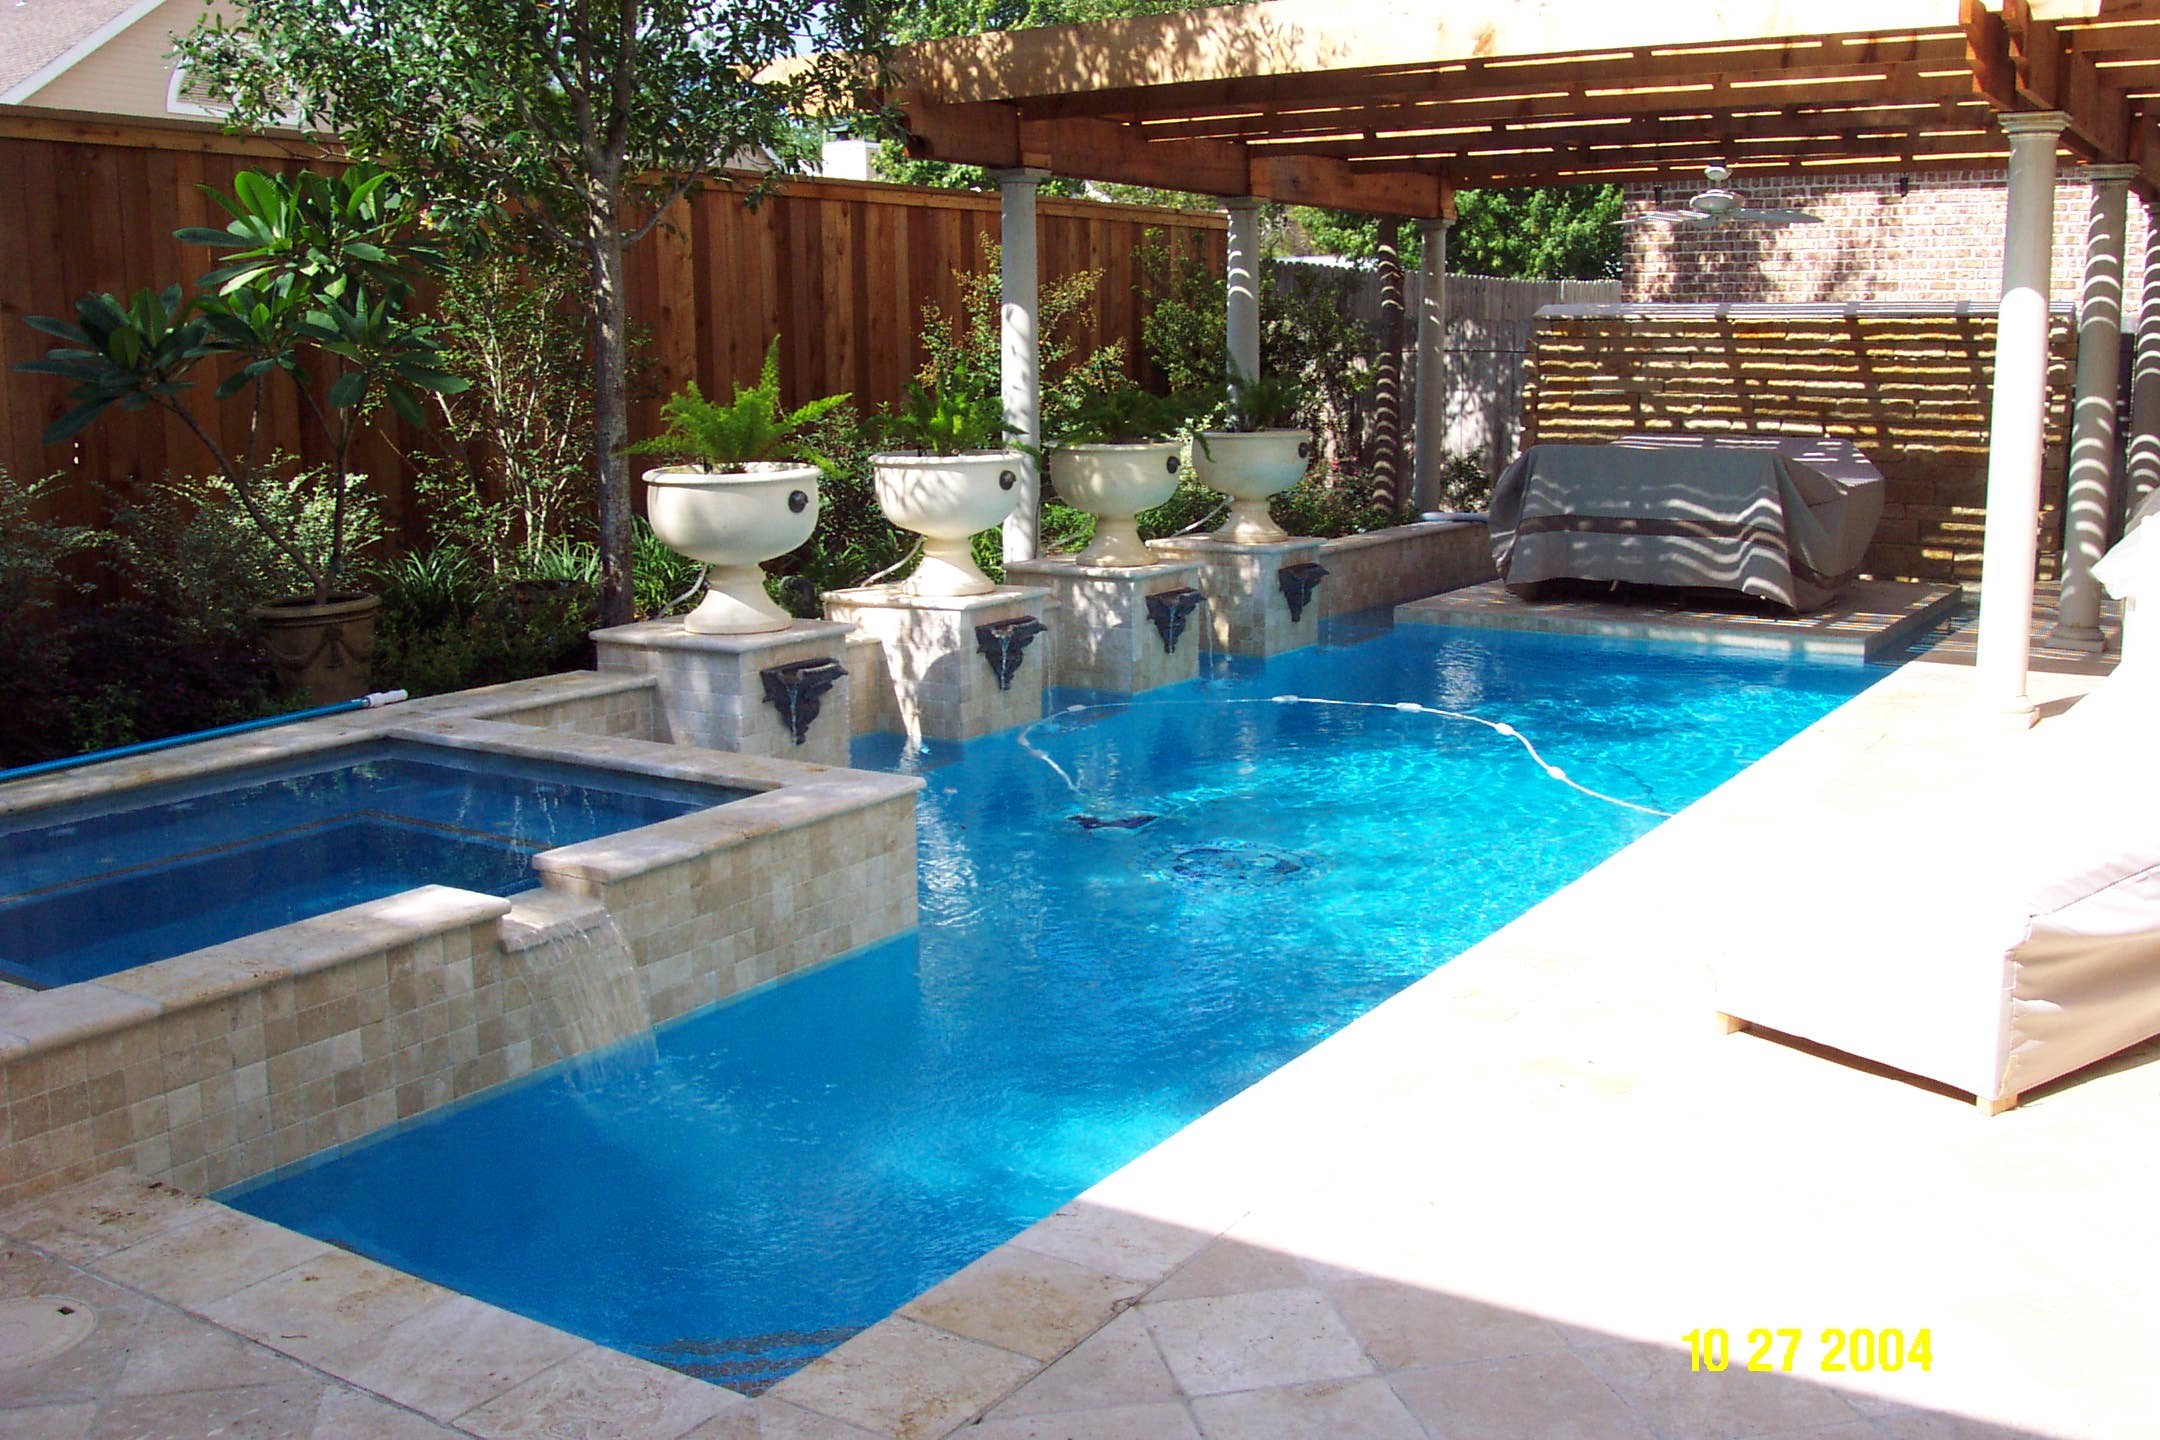 Cool Backyard Pool Designs for Your Outdoor Space: Pool Budget Calculator | Backyard Pool Designs | Mini Inground Pools